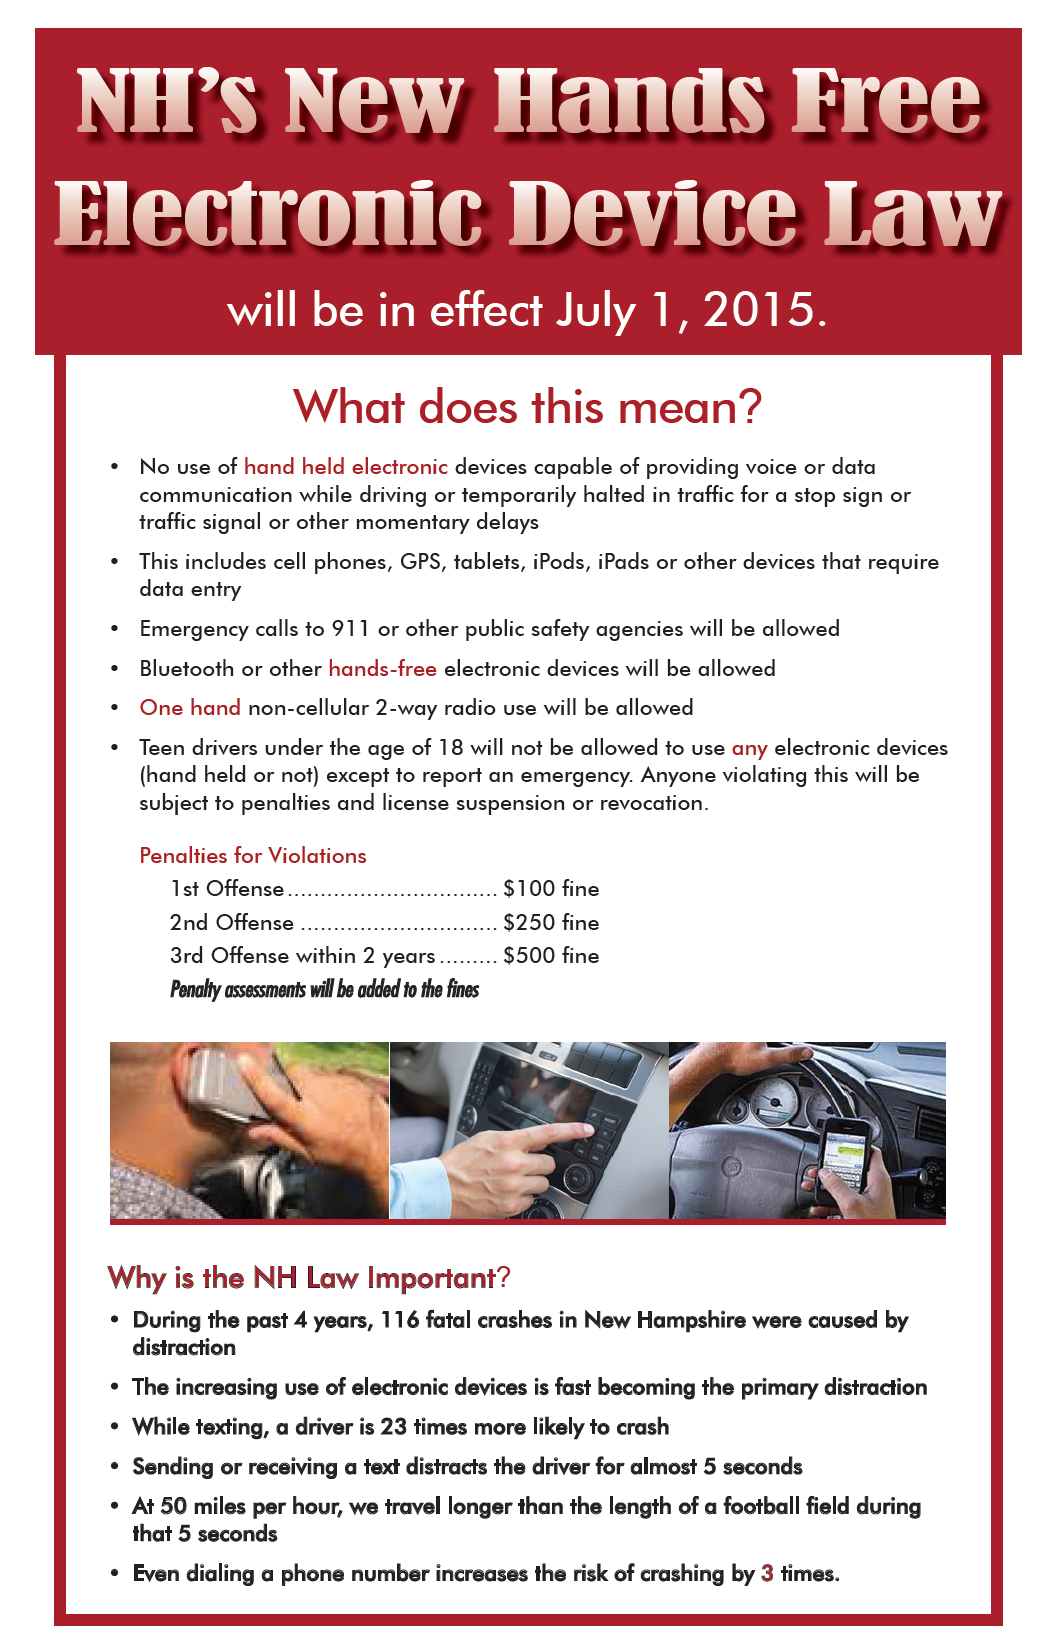 Nh S Hands Free Electronic Device Law Starts July 1 Bedford Nh Patch